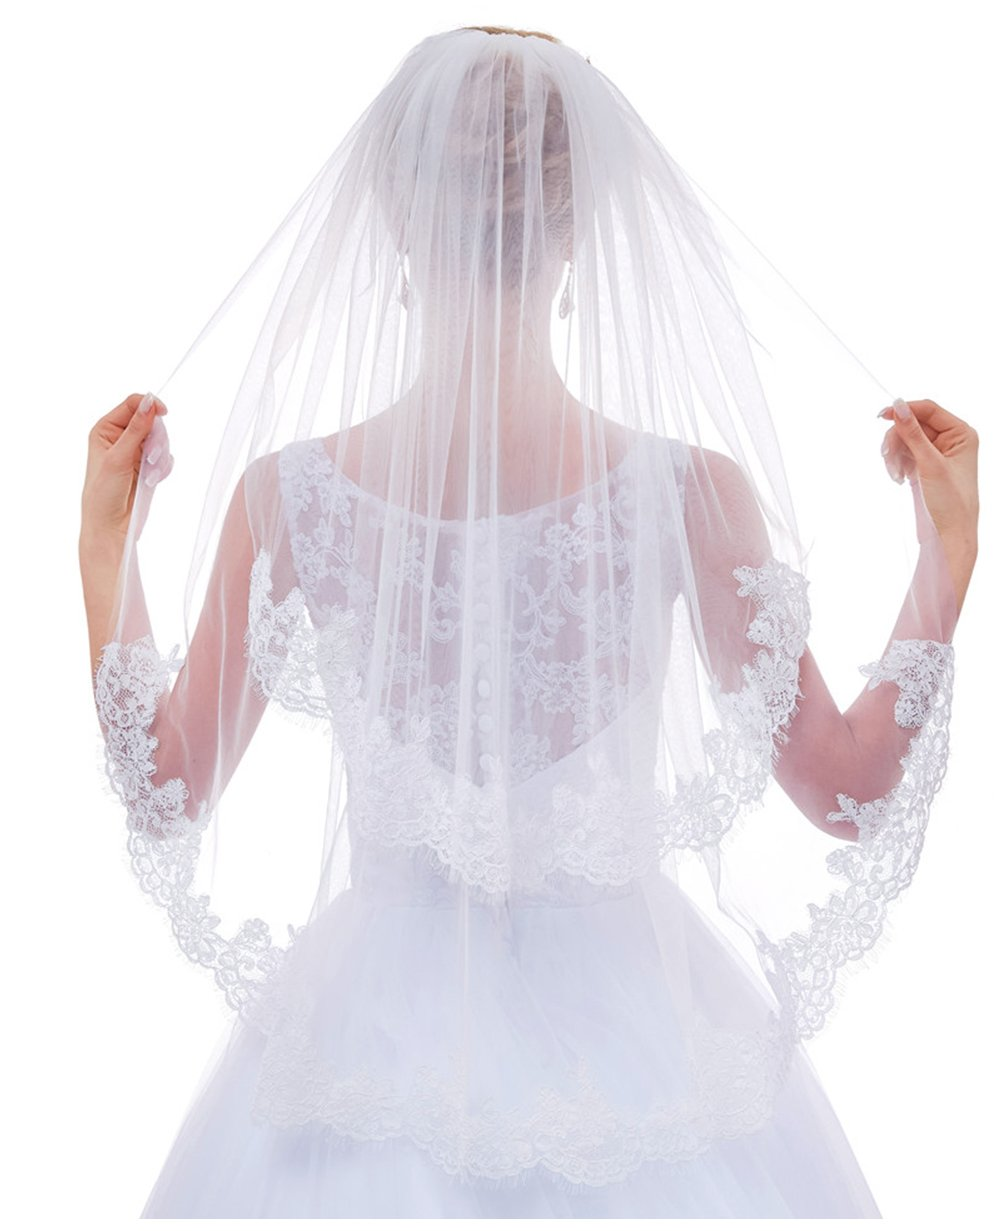 Greenia 2 Tier Lace Veil with Comb Short GN-V11